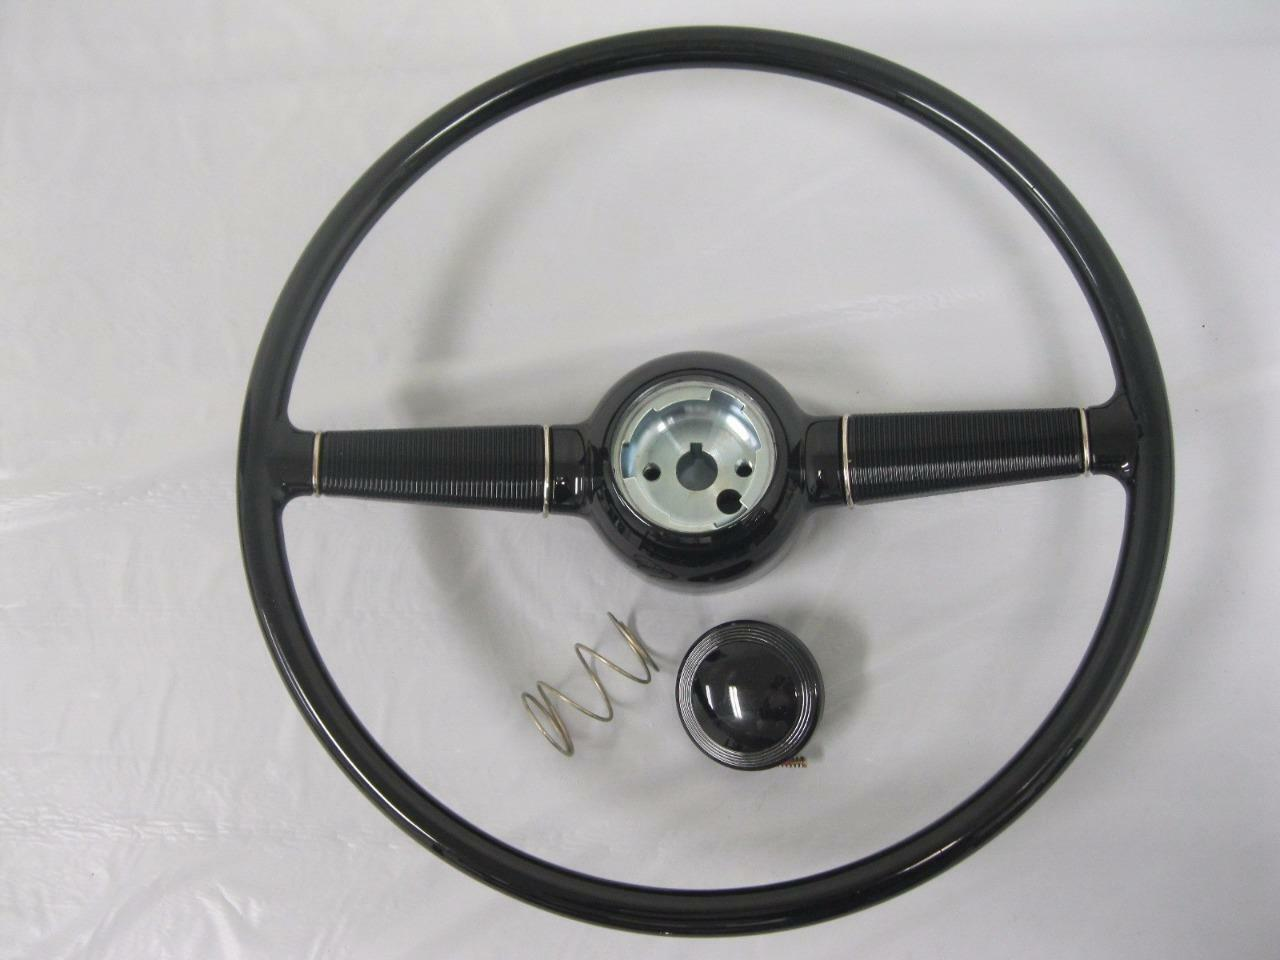 1940 Ford 15 Steering Wheel Horn Button Fits Gm Flaming River Ididit Column For Sale 1 Of 1only Available